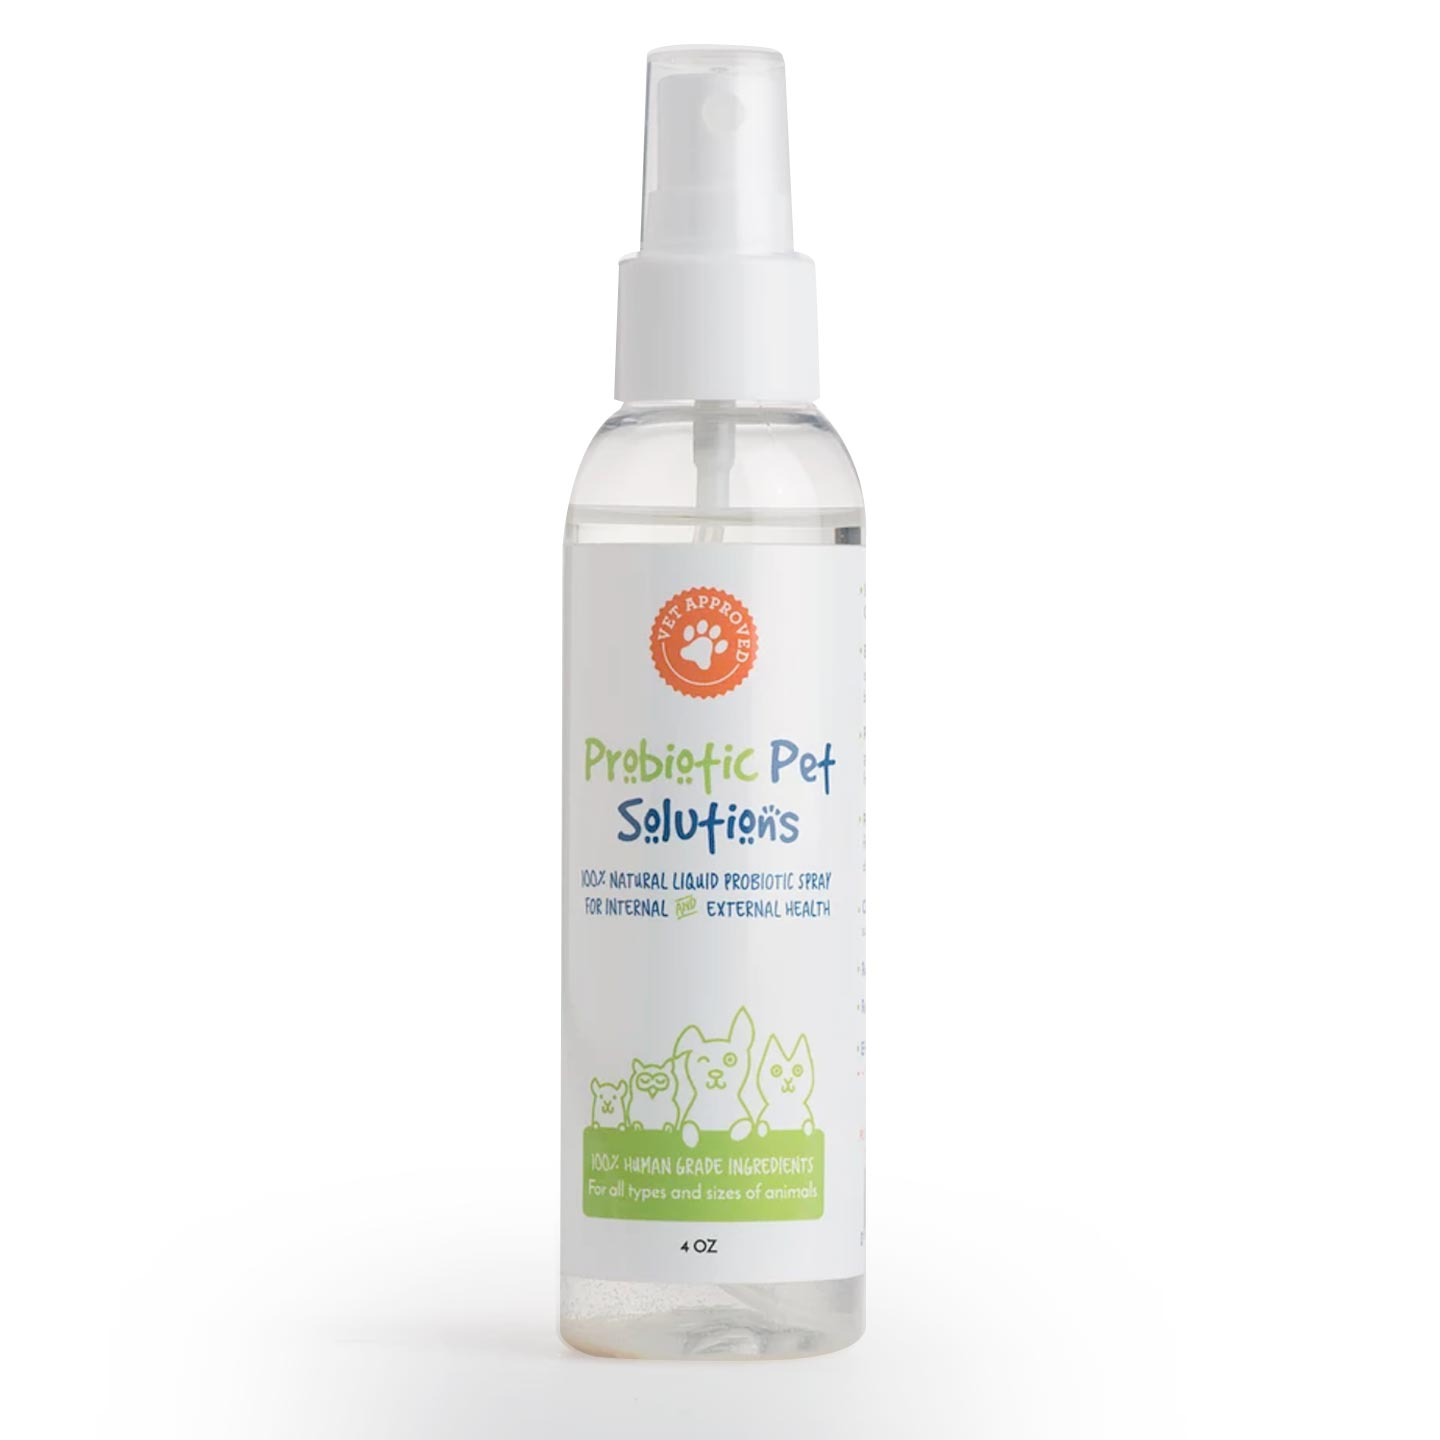 Probiotic Pet Solutions - Natural Probiotics Spray for Pet | Siani Skin Care Probiotic